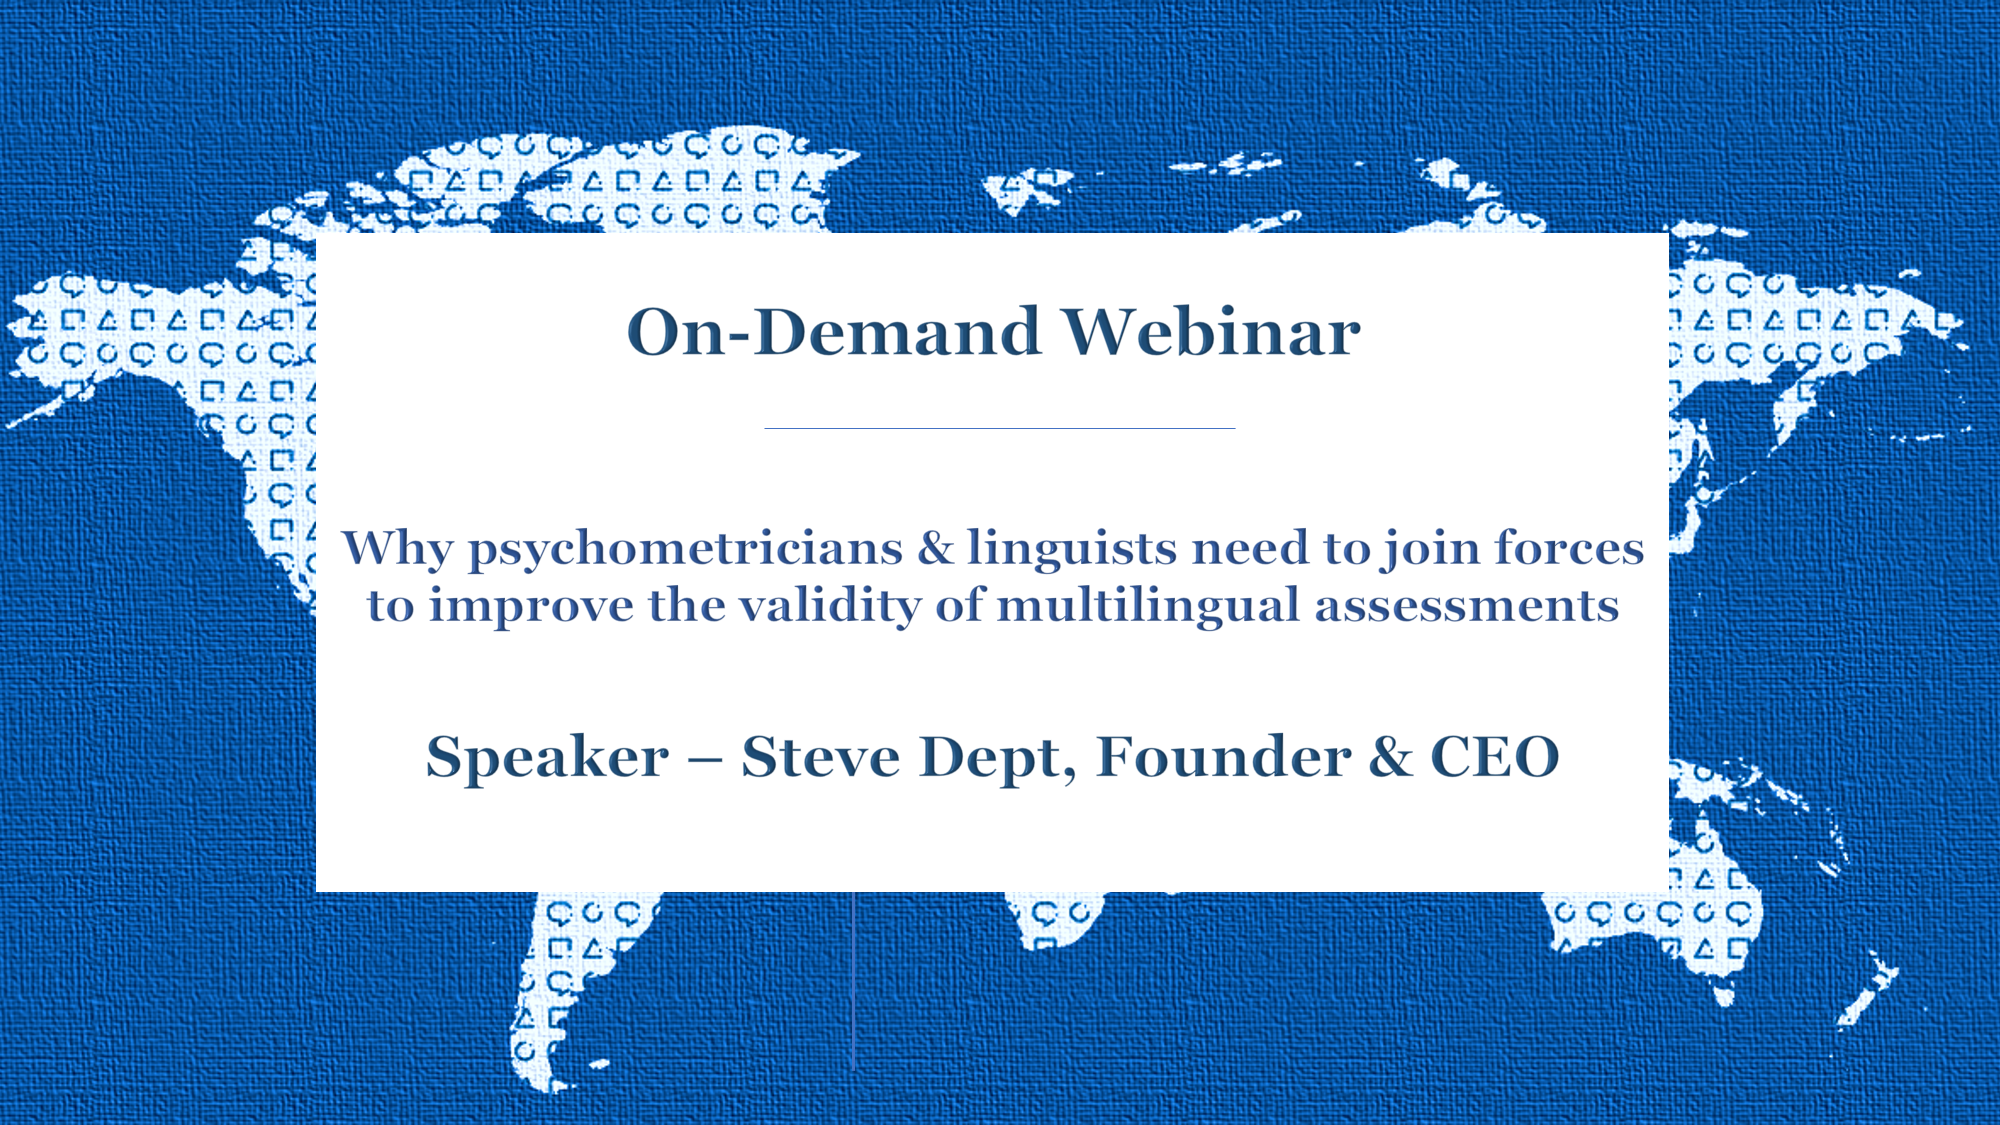 On-Demand Webinar | Why psychometricians & linguists need to join forces to improve the validity of multilingual assessments